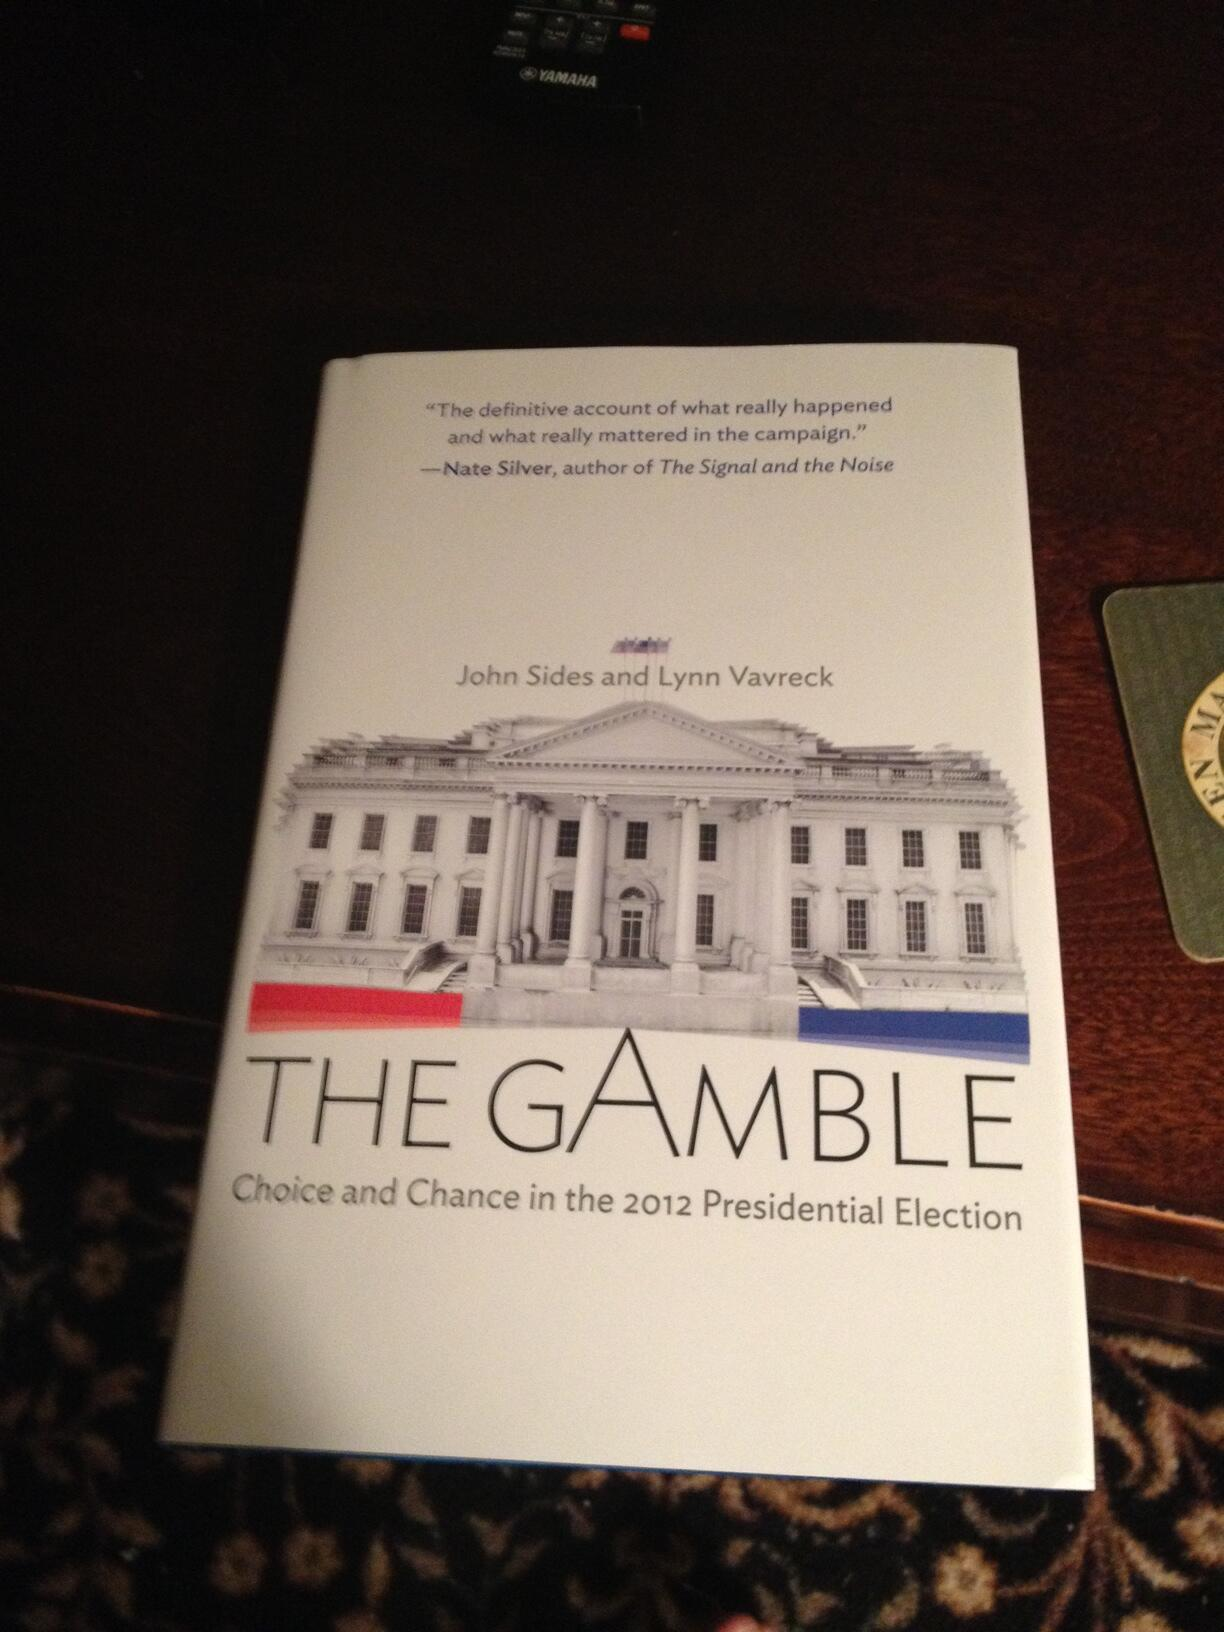 RT @_amengel: .@monkeycageblog and @vavreck's Gamble delivered today. Two weeks to finish it for class and their @VanderbiltU panel http://t.co/JhGKlZvnaF